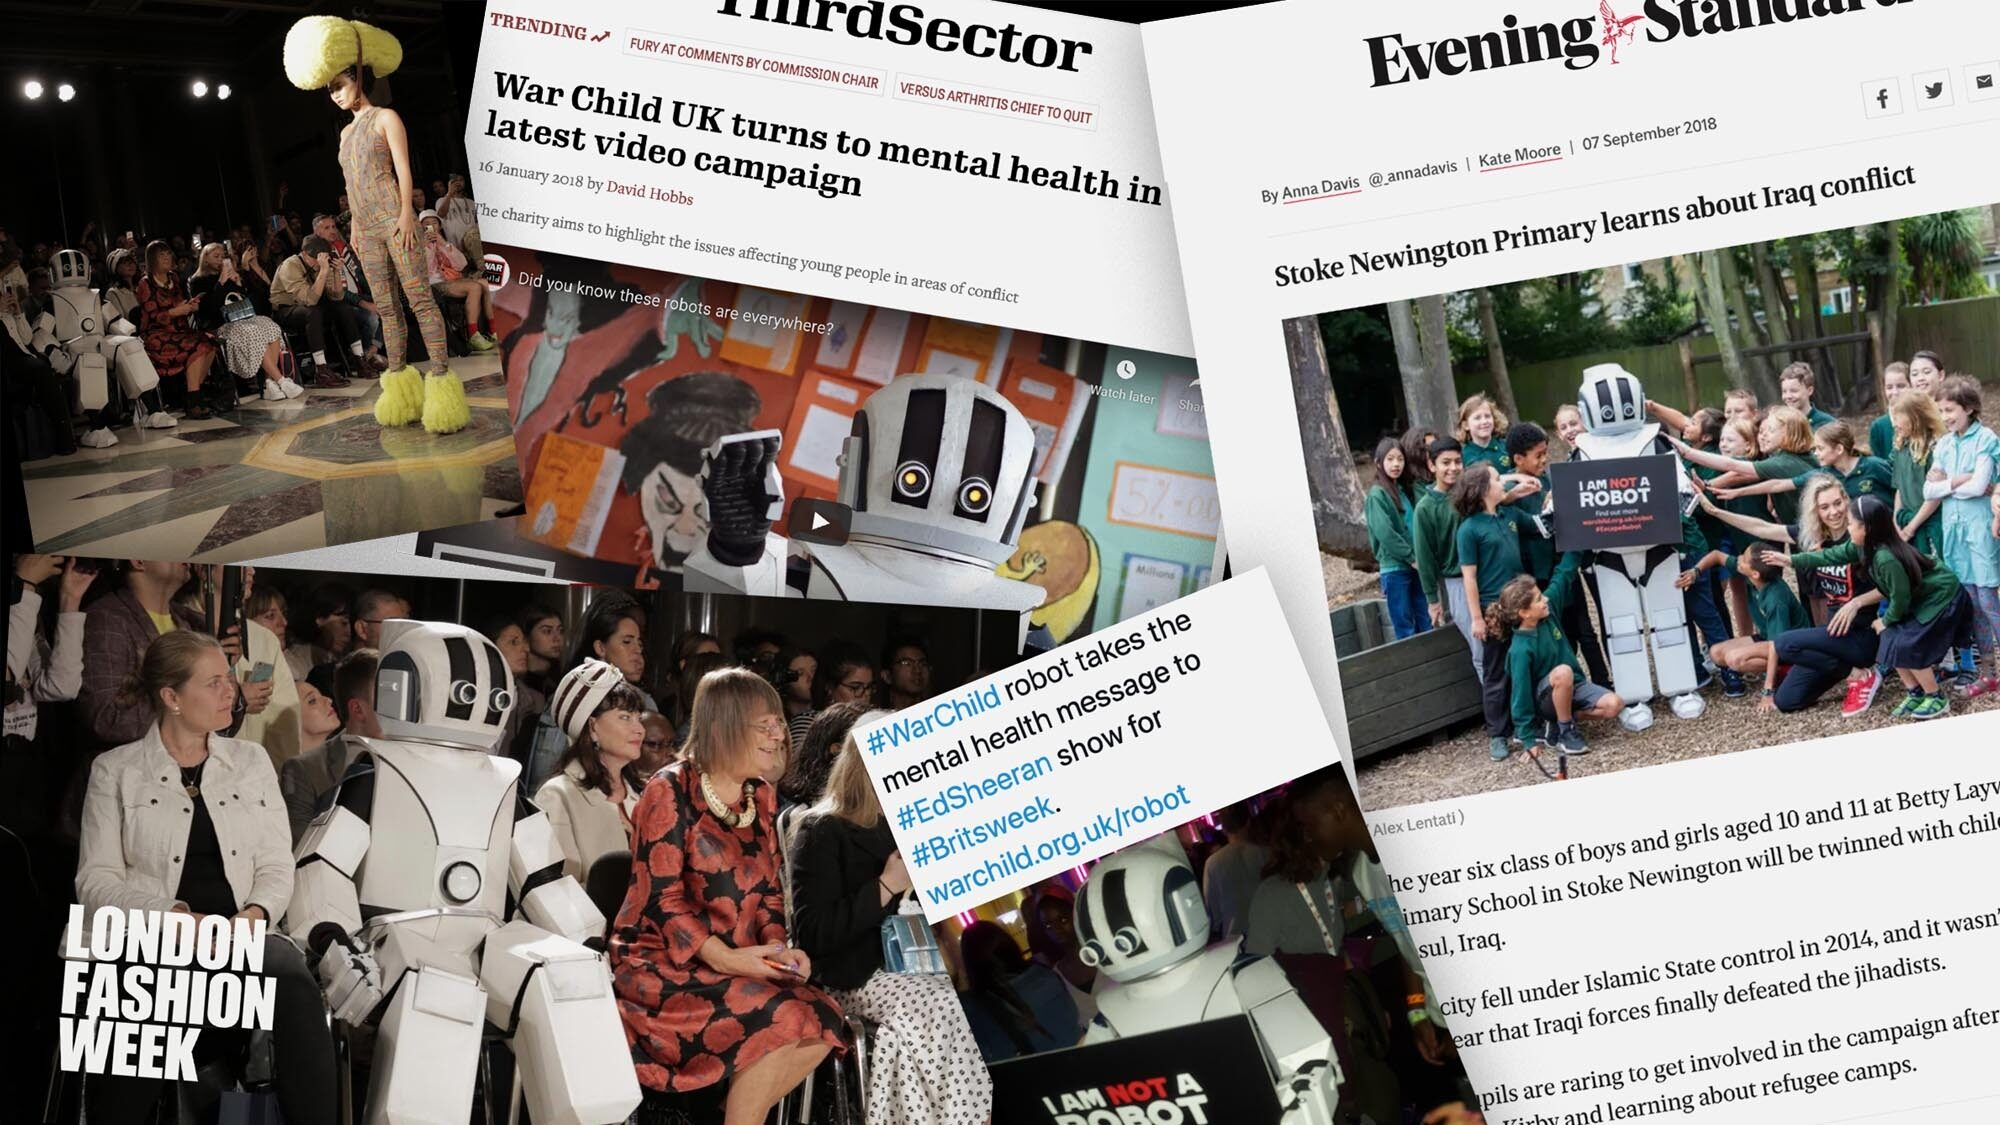 News clippings and headlines from War Child's #EscapeRobot campaign